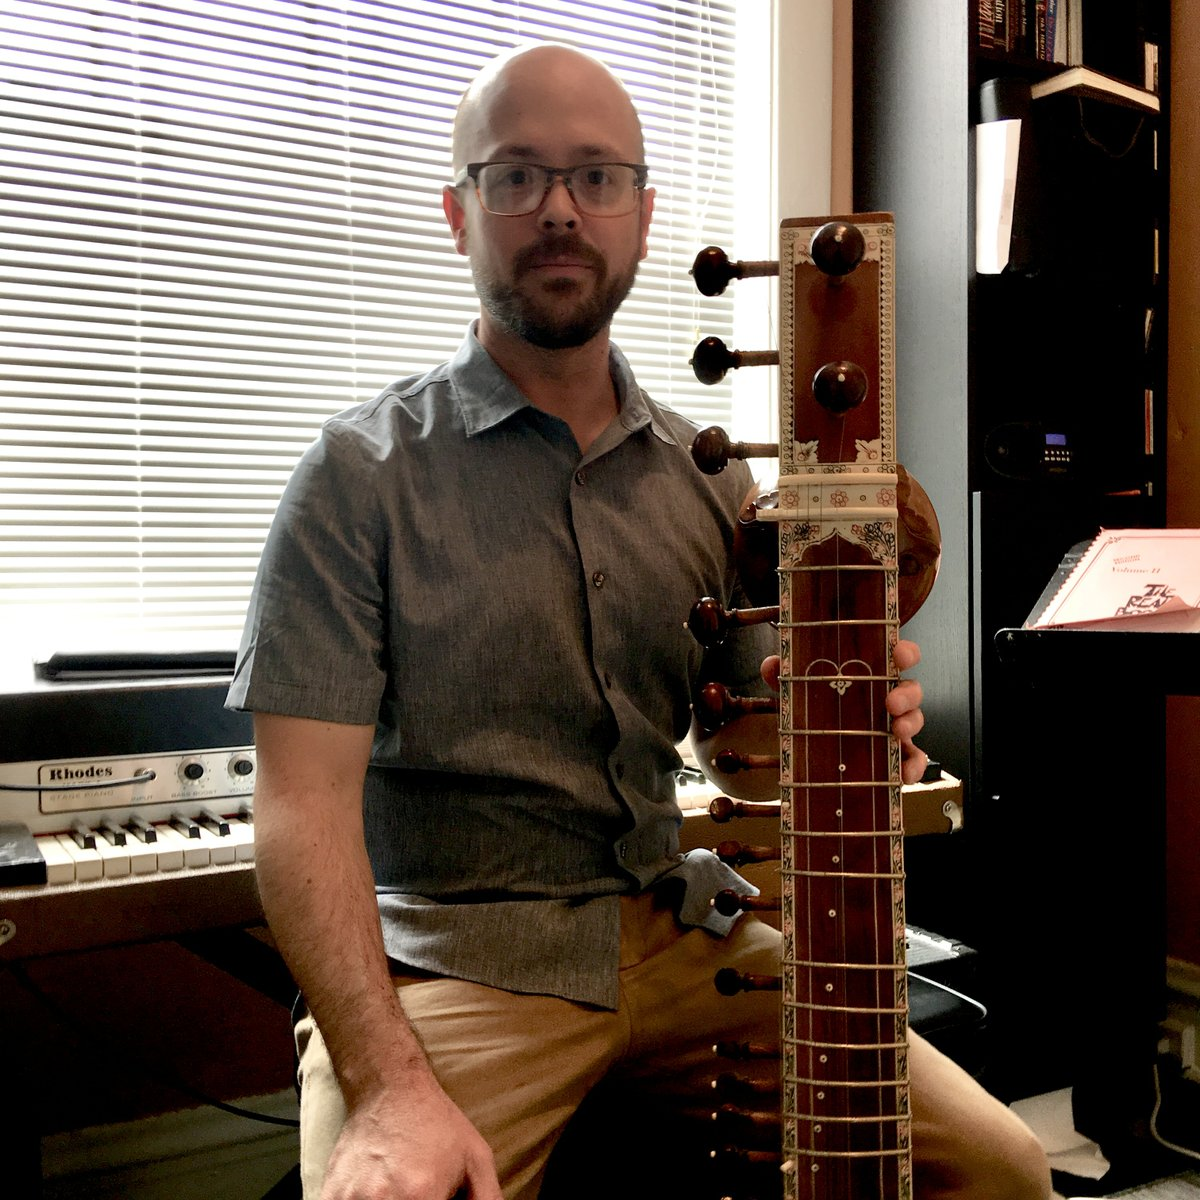 Jazz bassist Bob DeBoo found this curious abandoned instrument in his Shaw neighborhood alley—now police are trying to figure out whom it belongs to